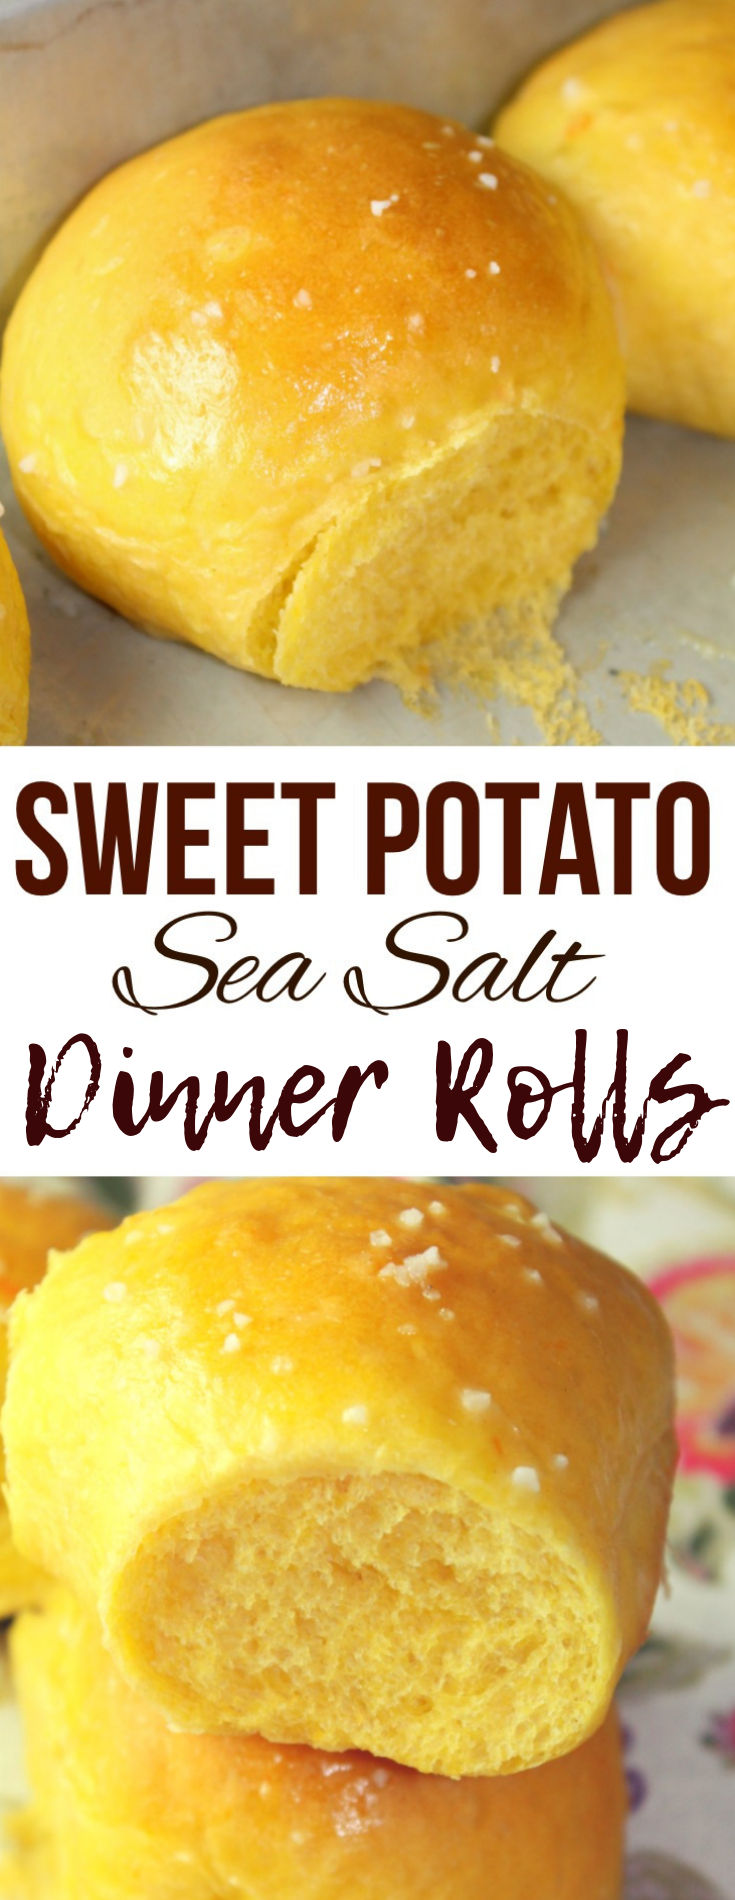 Sweet Potato Sea Salt Rolls that are light, fluffy and full of pumpkin flavor - the perfect accompaniment to Thanksgiving dinner or a bowl of hot soup!